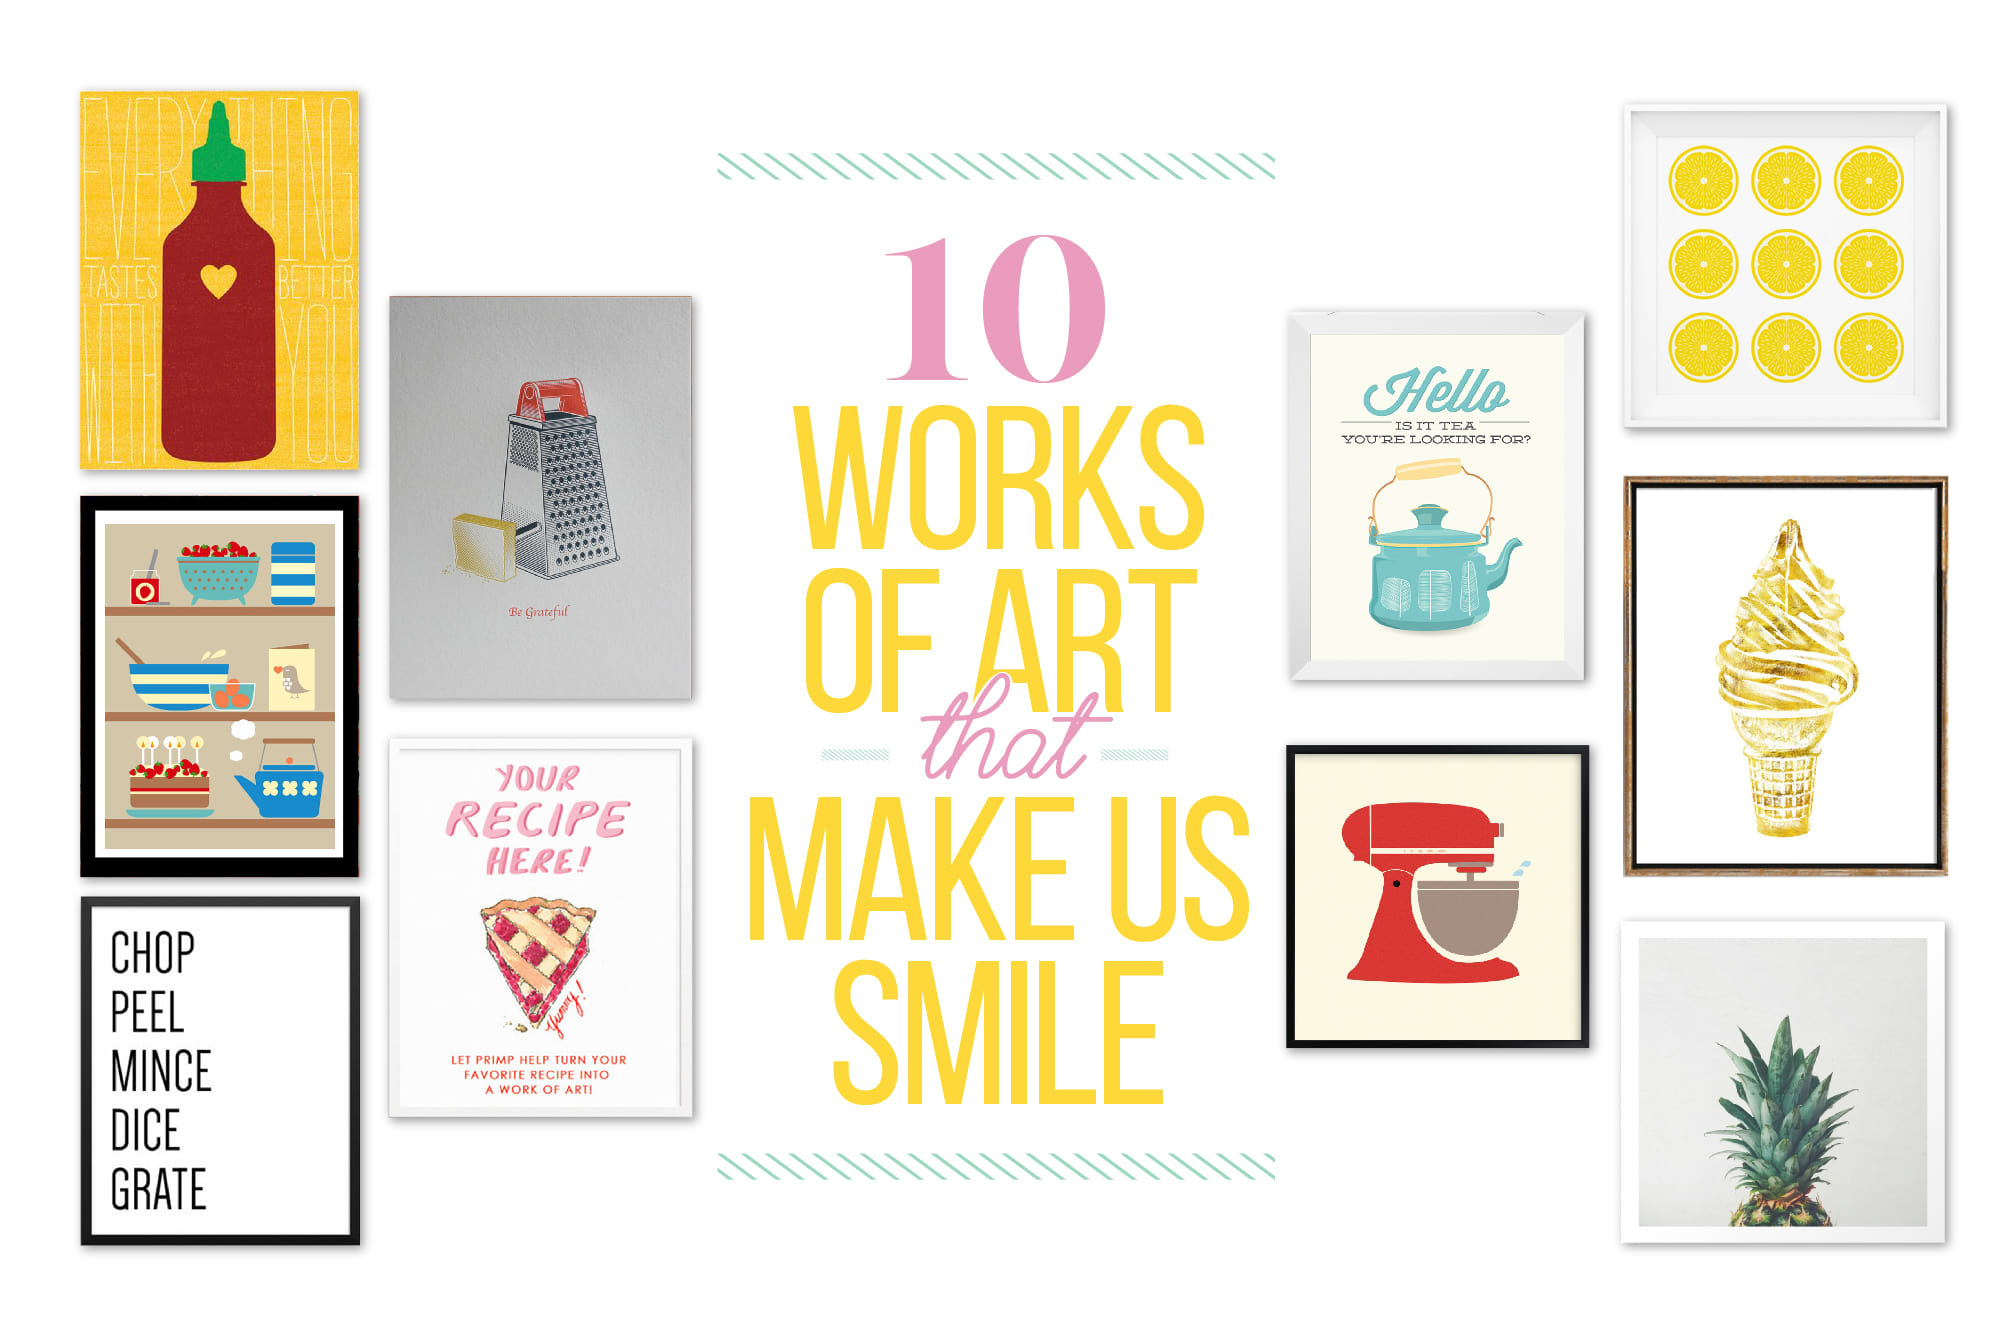 10 Works of Art That Make Us Smile: gallery image 1